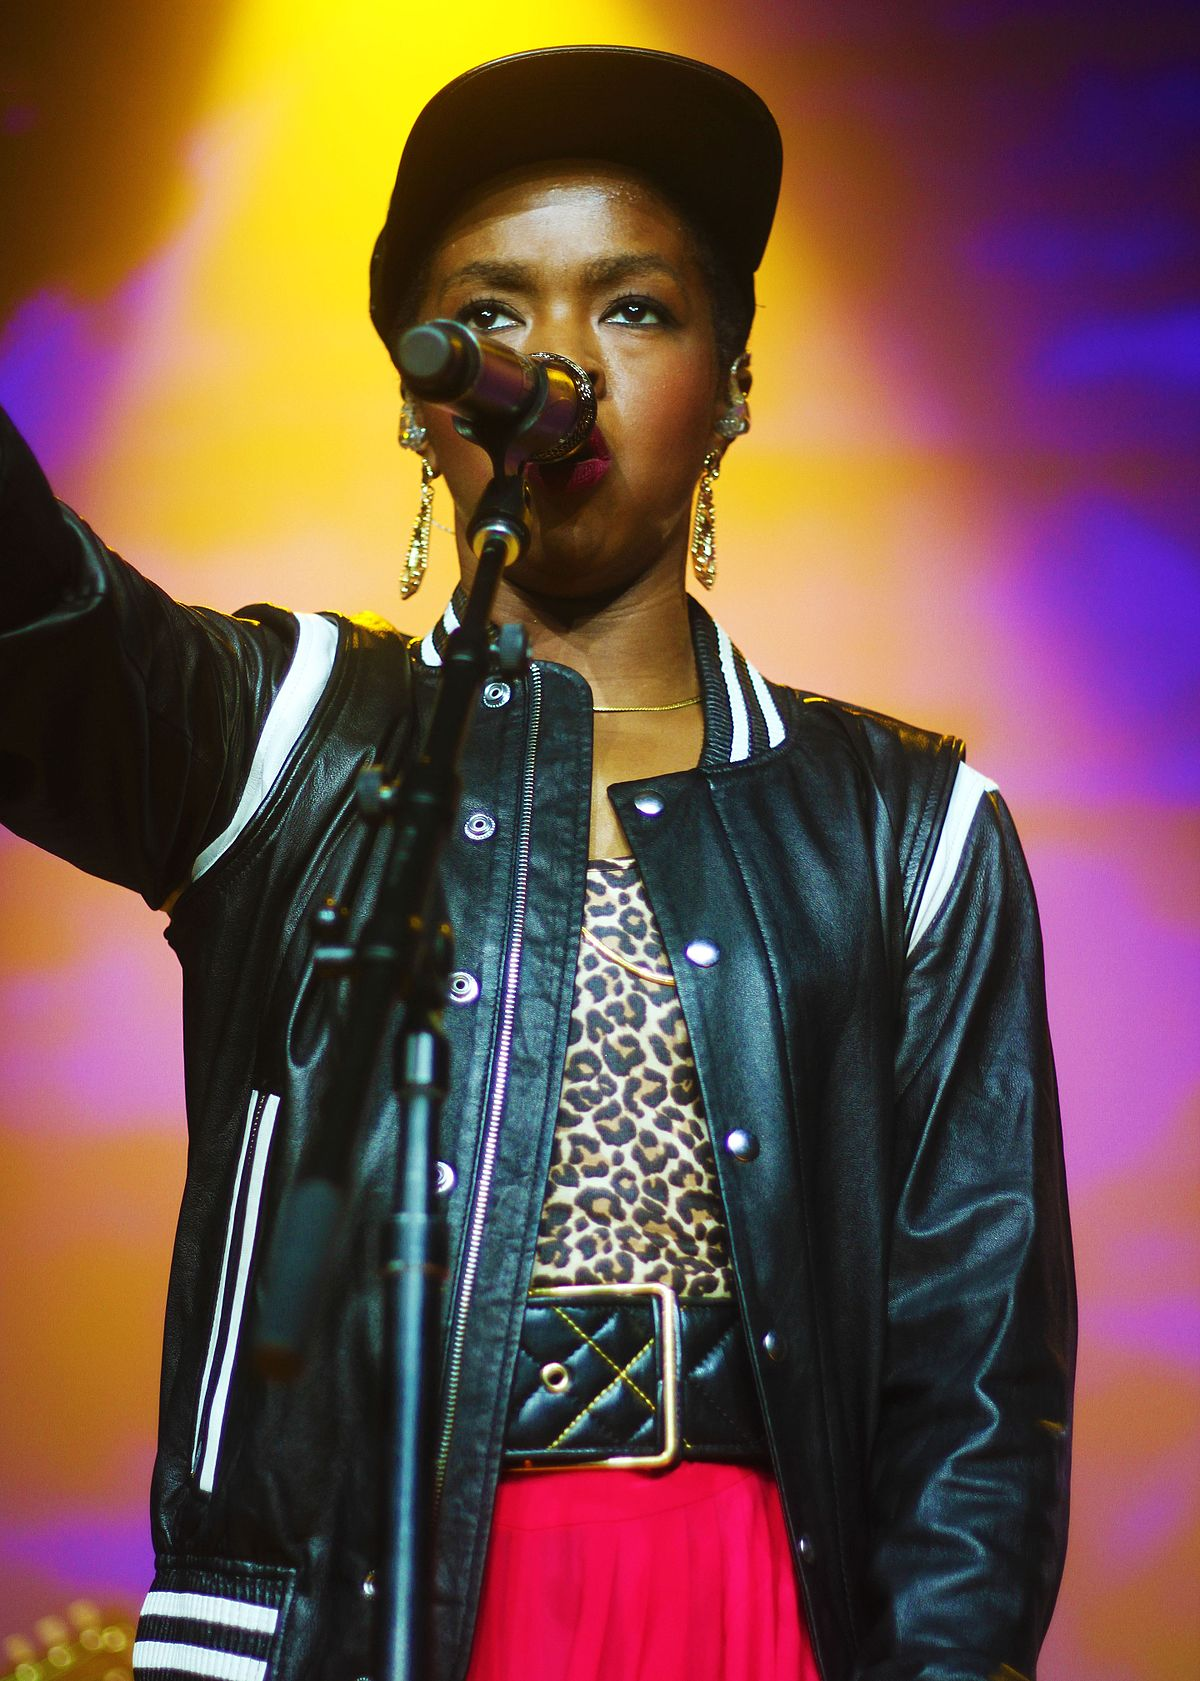 Lauryn Hill - Wikipedia